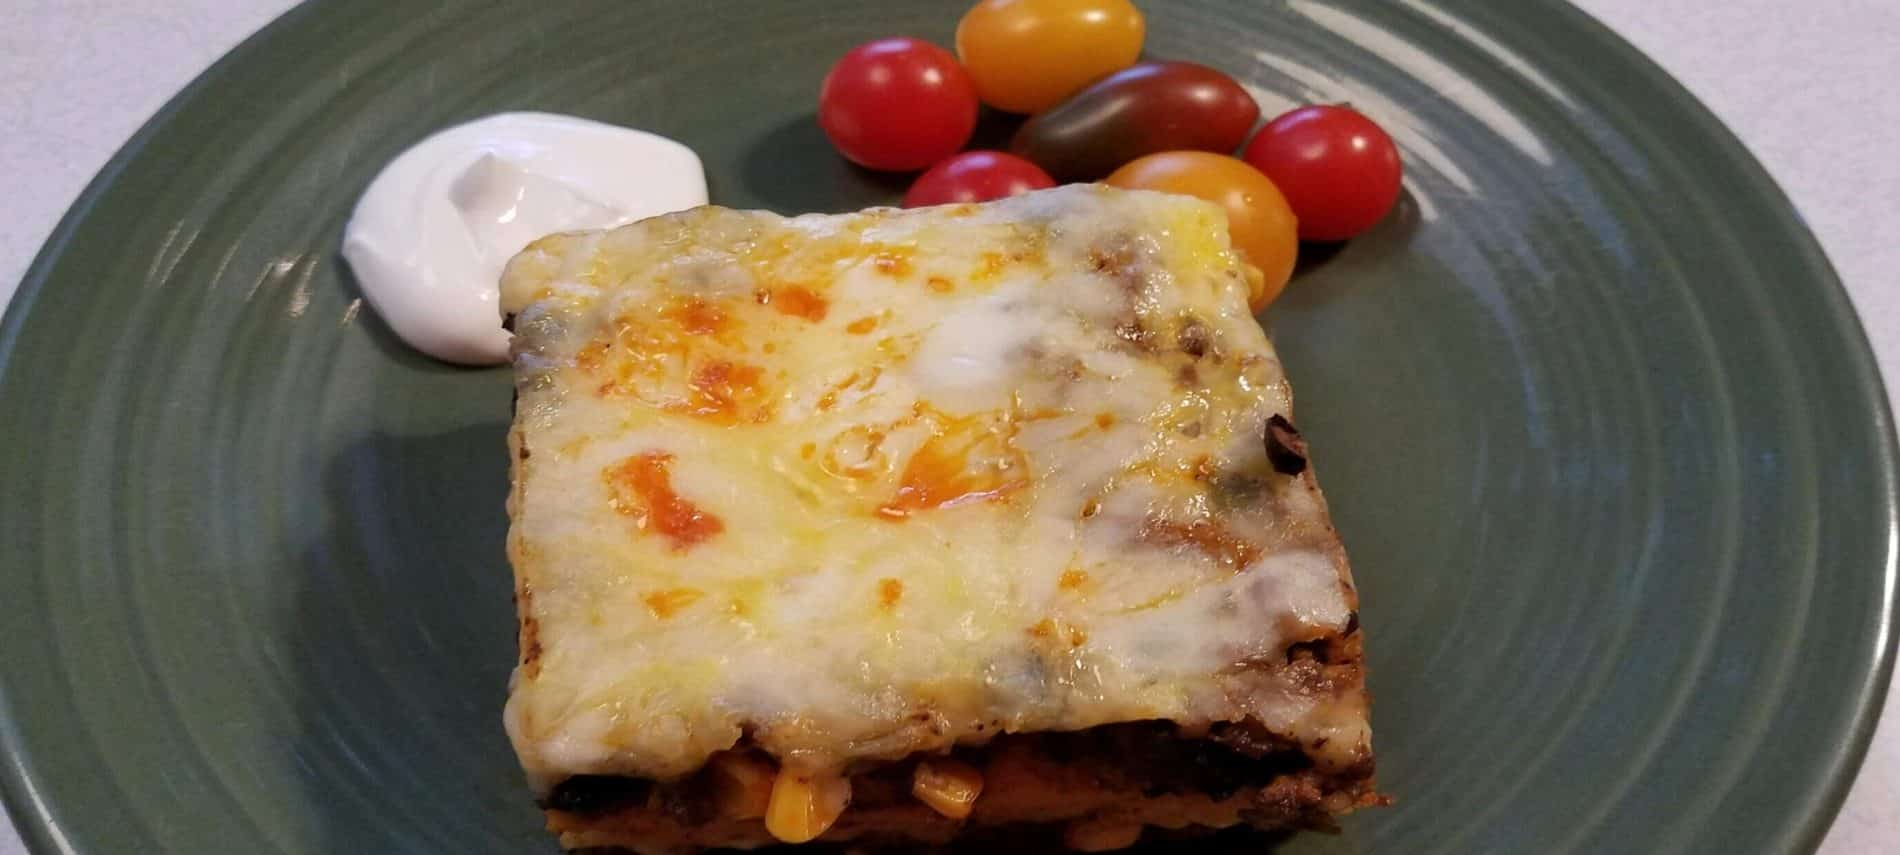 Layered South of the Border Breakfast Lasagna with melted cheese on top, served on a green plate with sour cream and multi colored cherry tomatoes